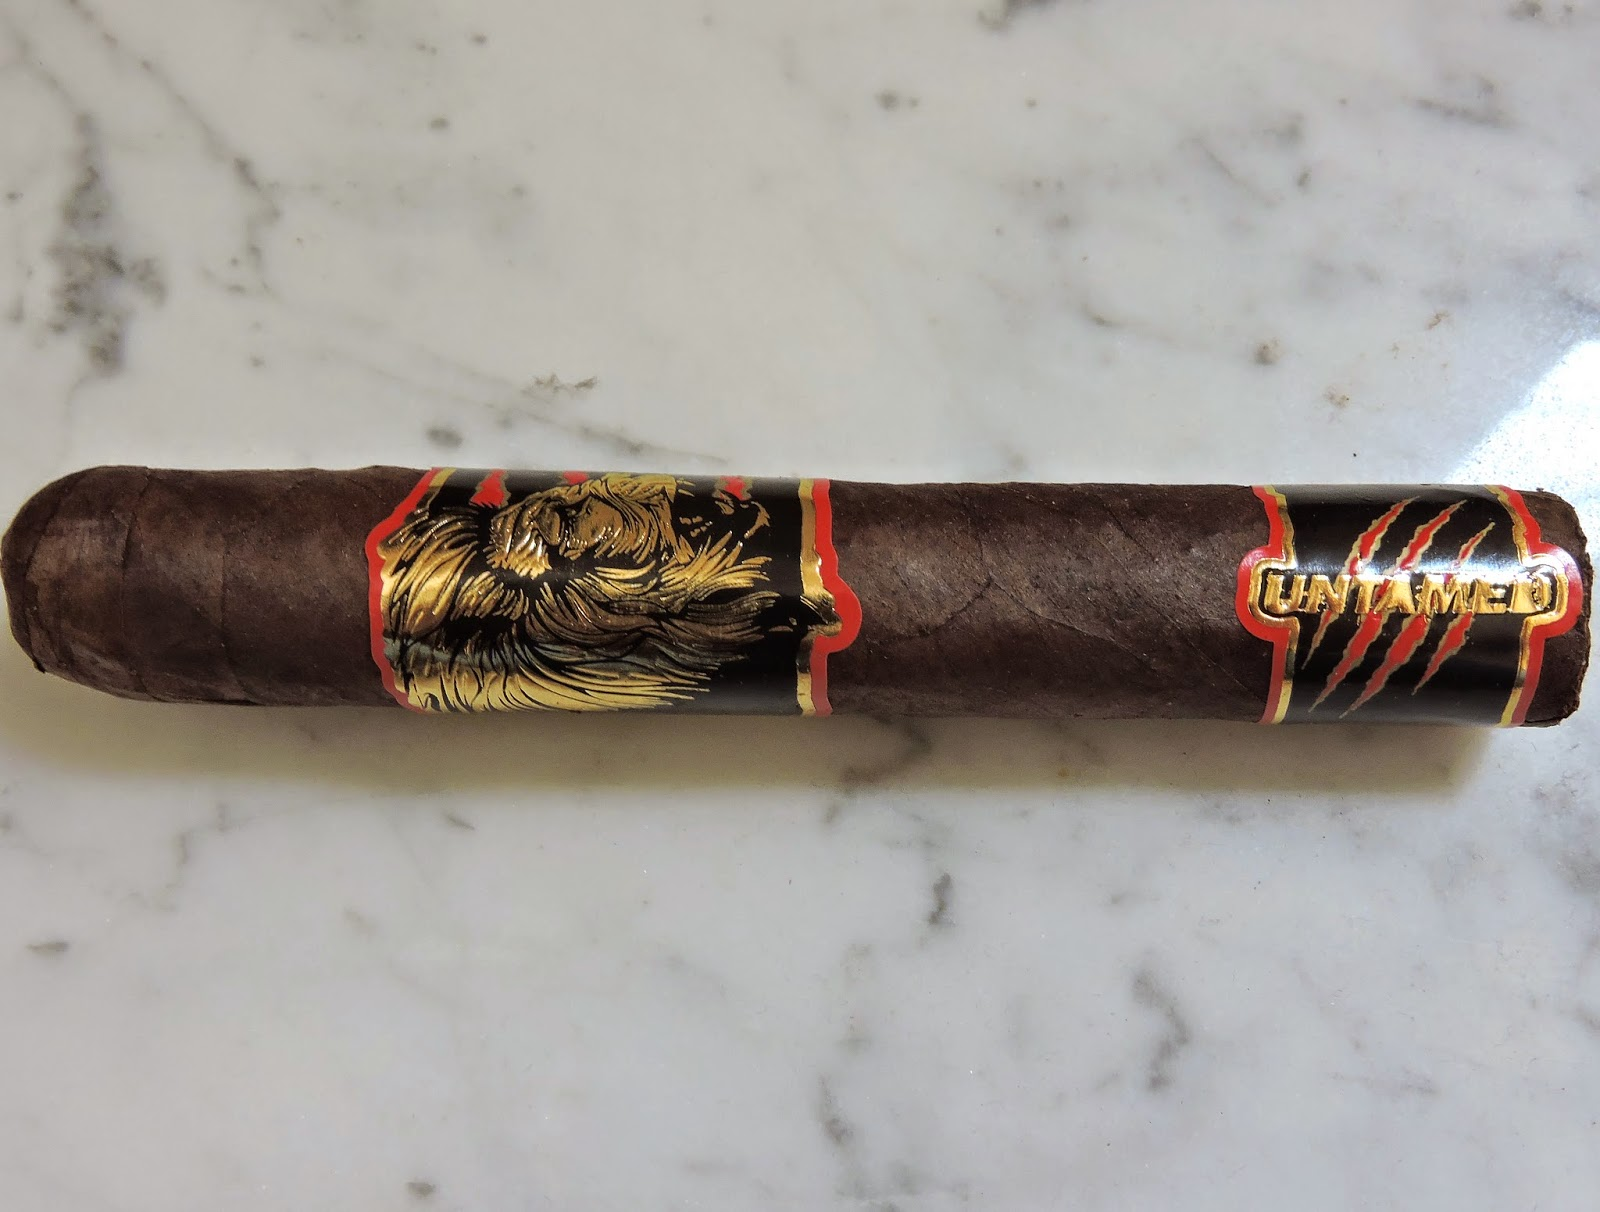 Cigar Pre-Review: Untamed by La Aurora